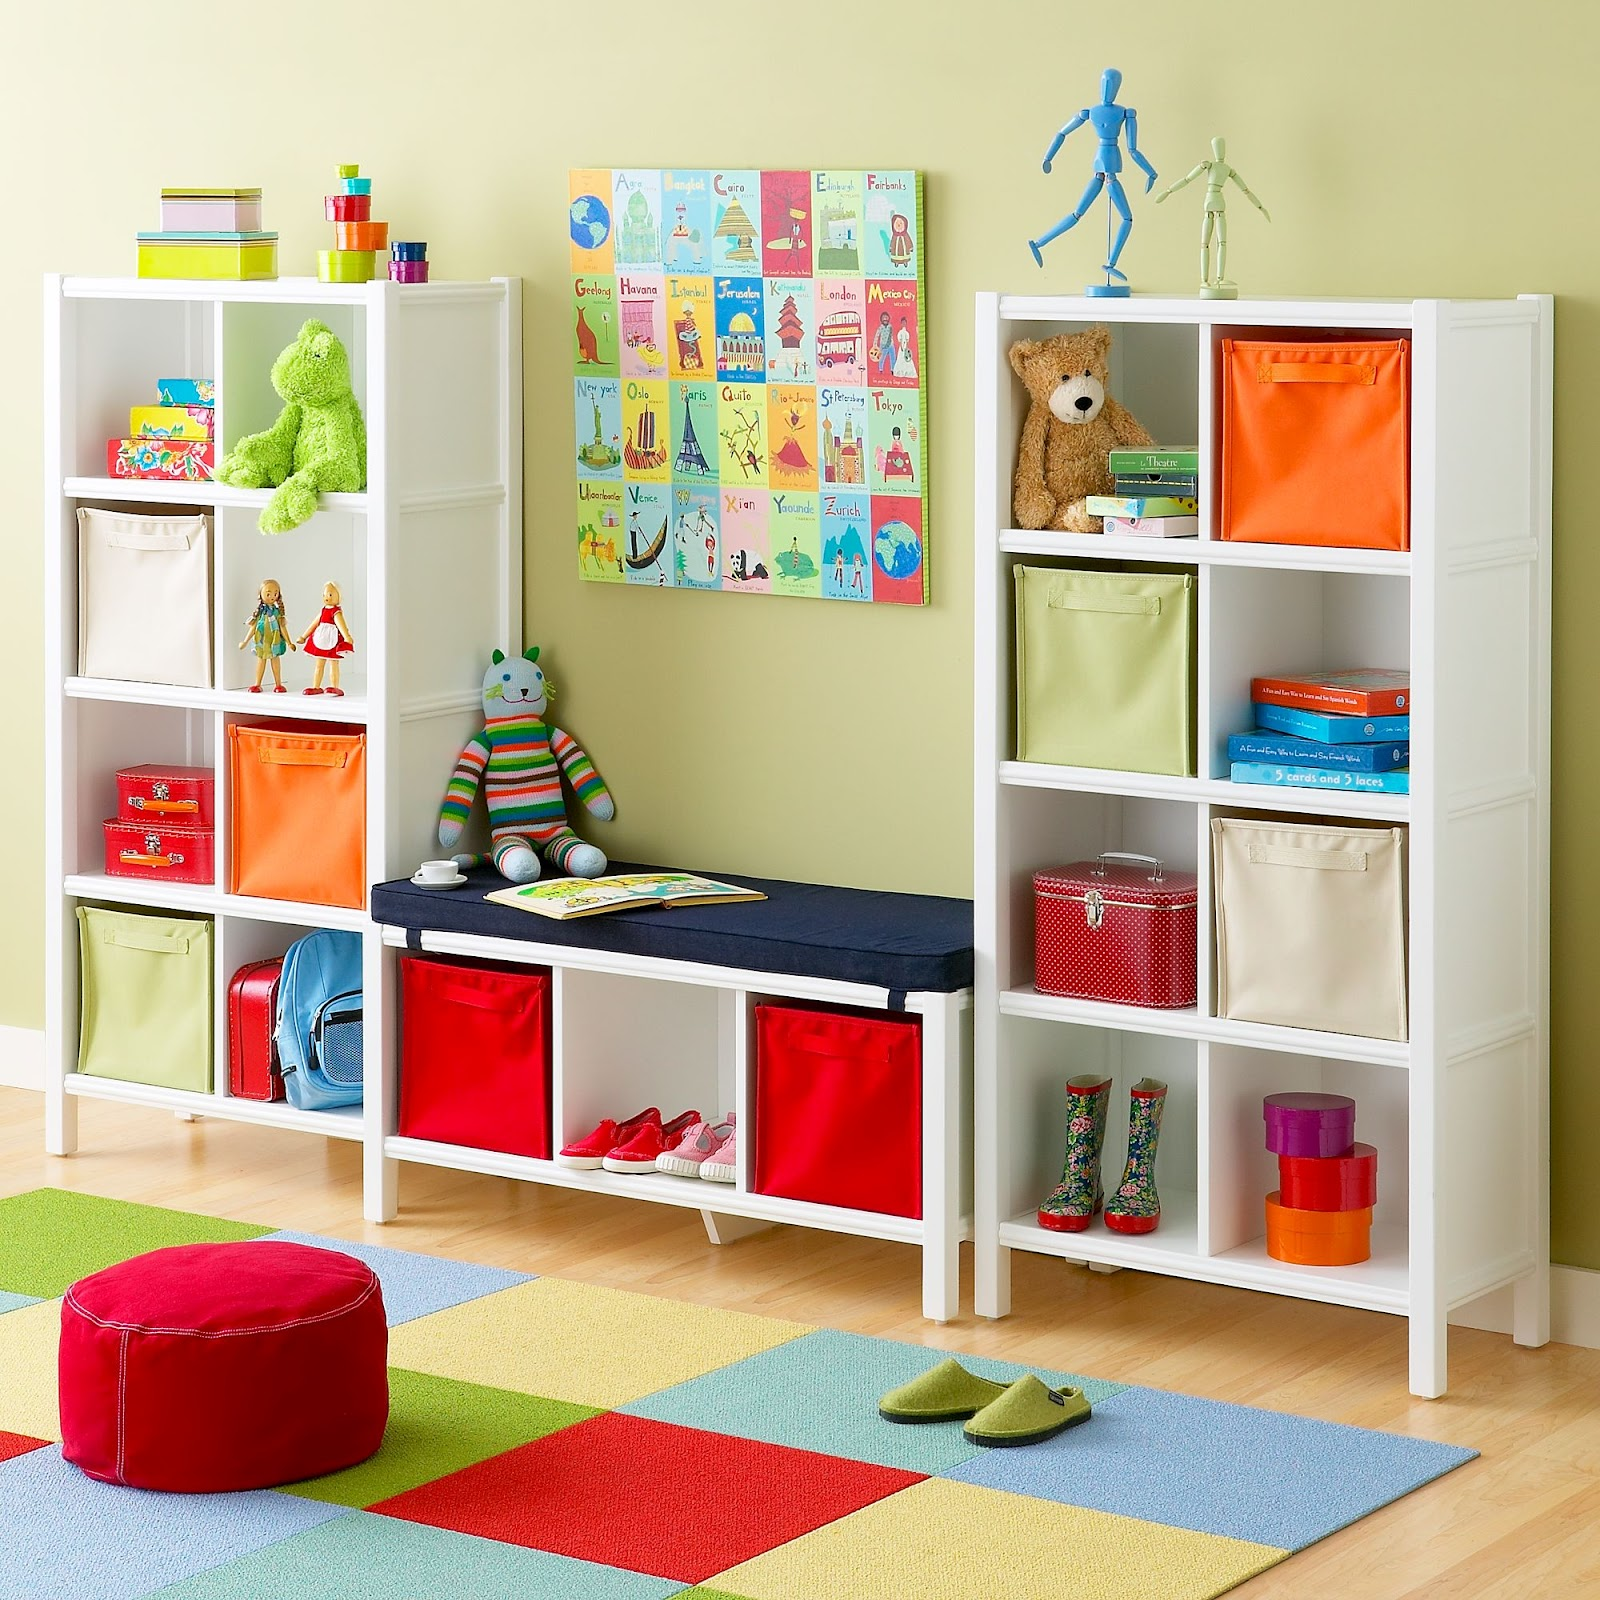 Colorful Playroom Design: Cube Storage In Primary Colors Child's Playroom